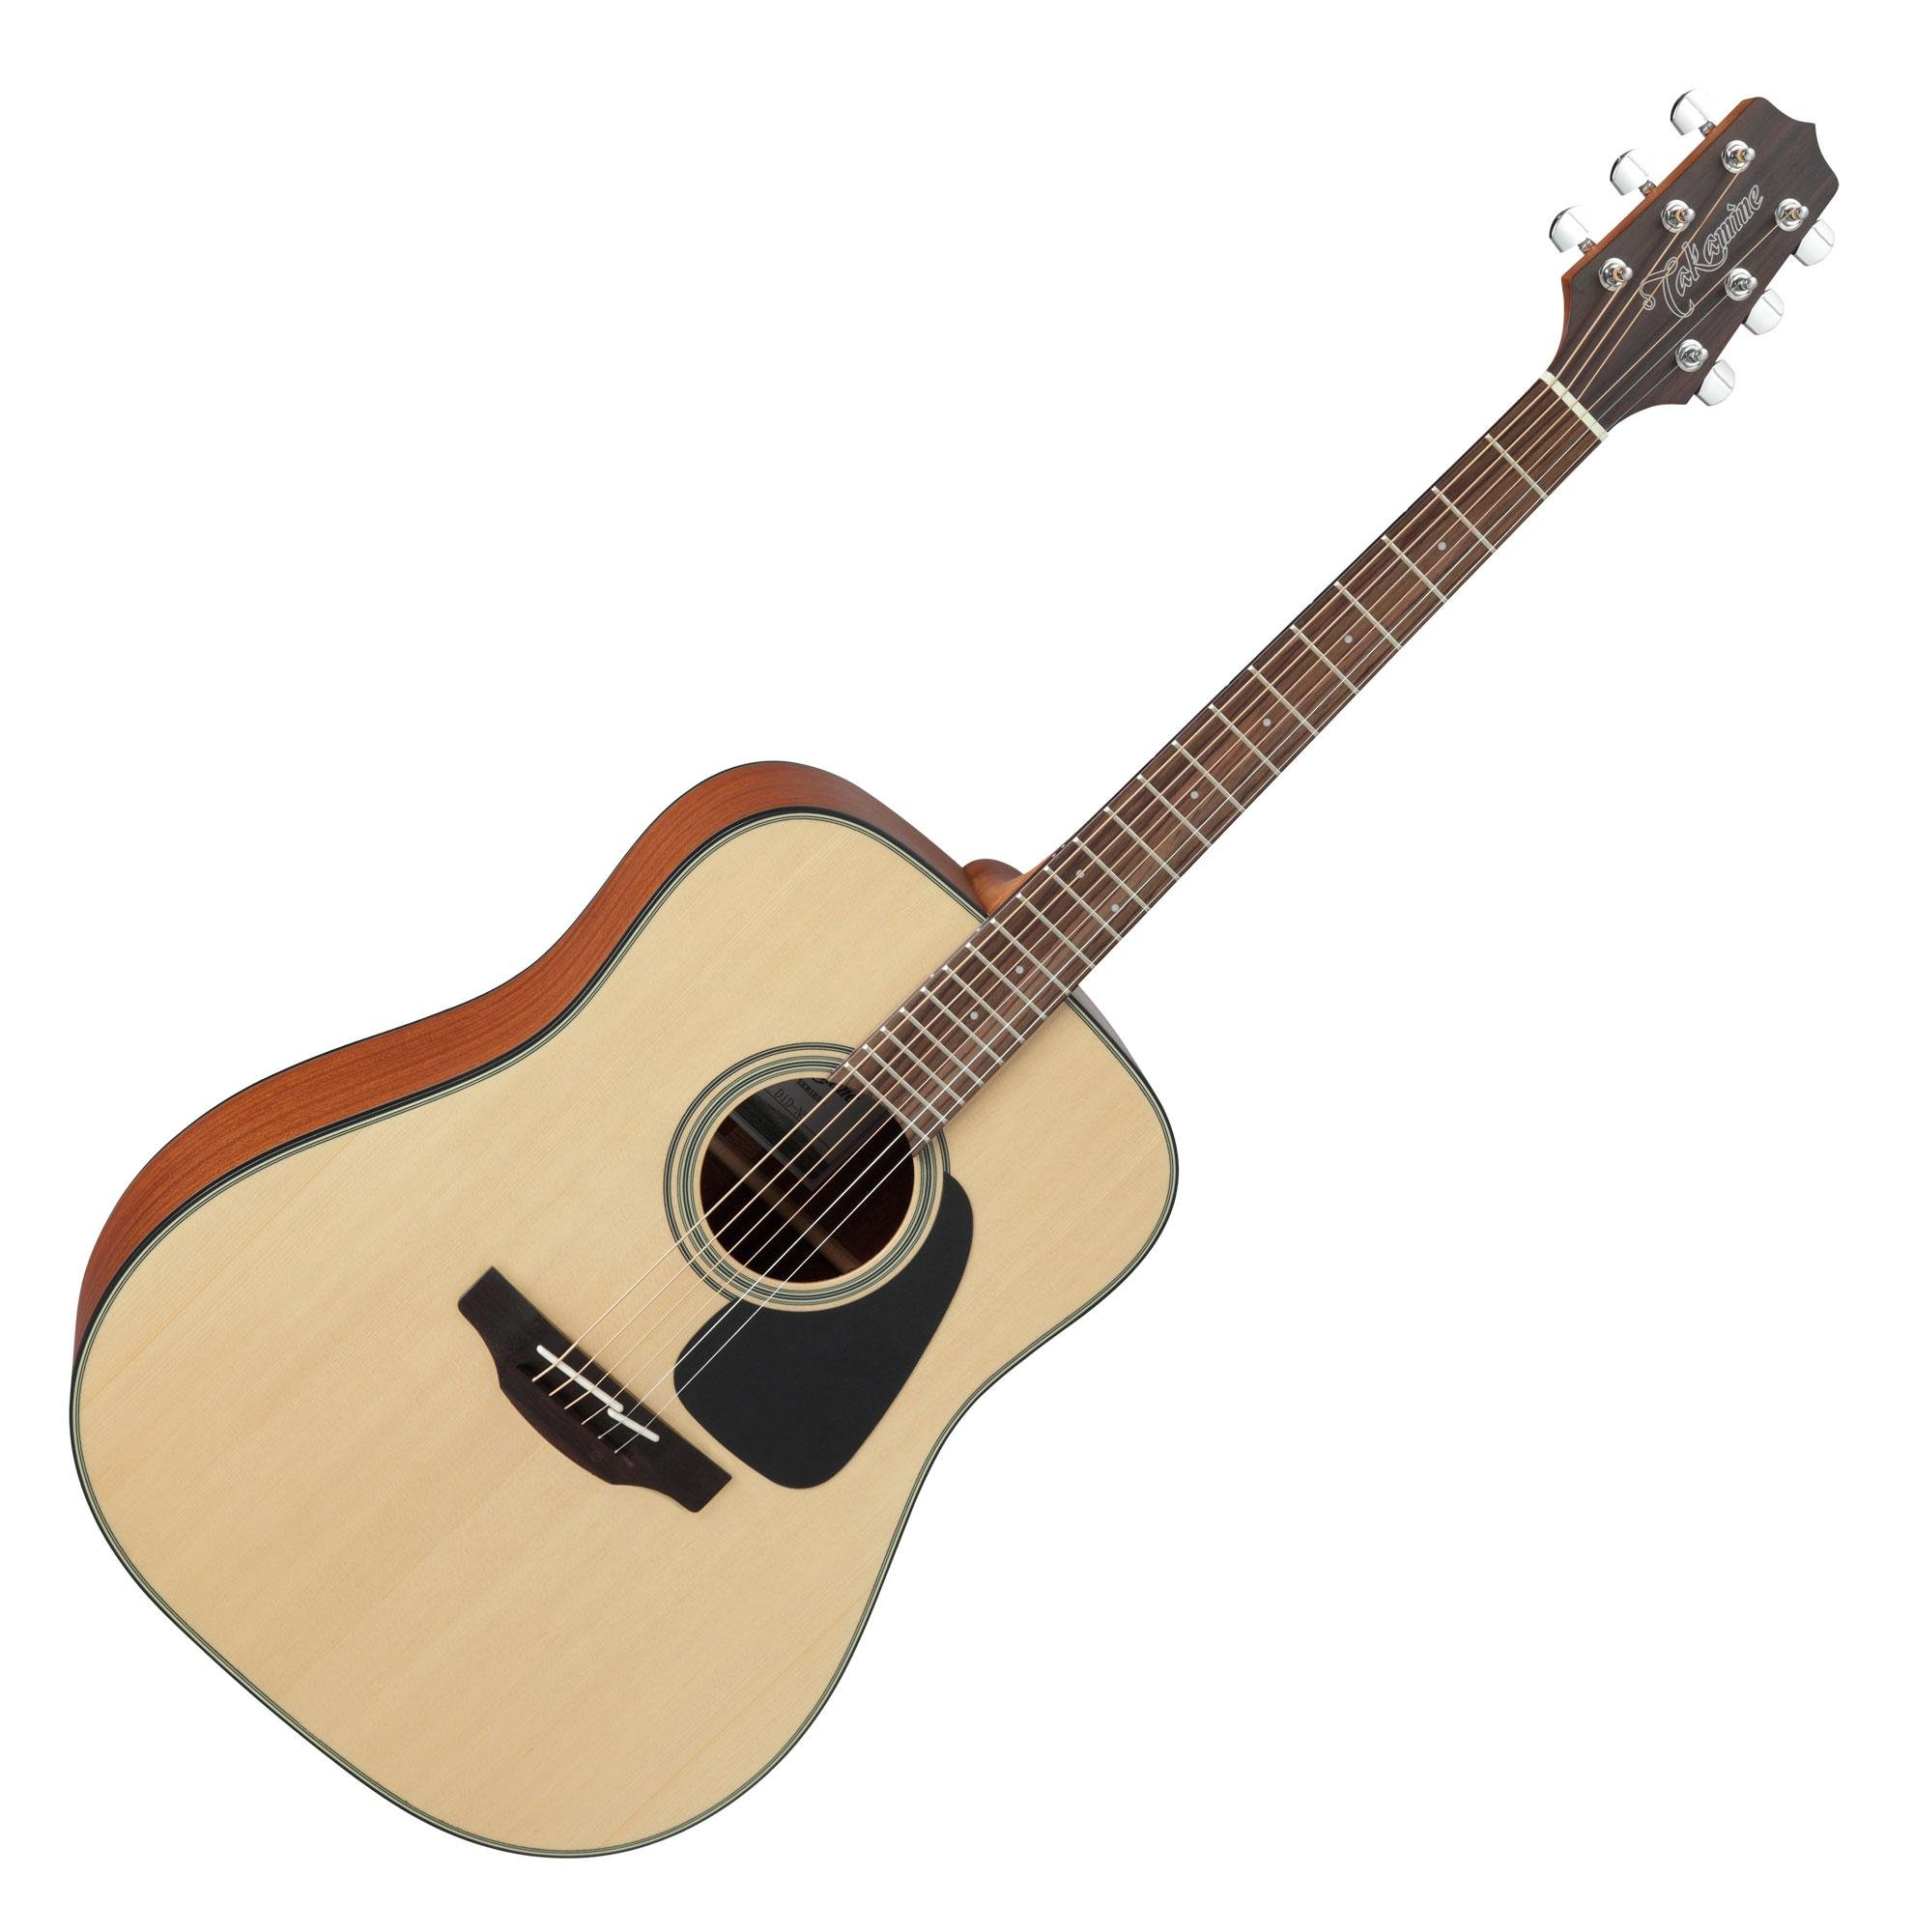 Takamine G Series GD10 Dreadnought Acoustic Guitar Satin Natural by Takamine